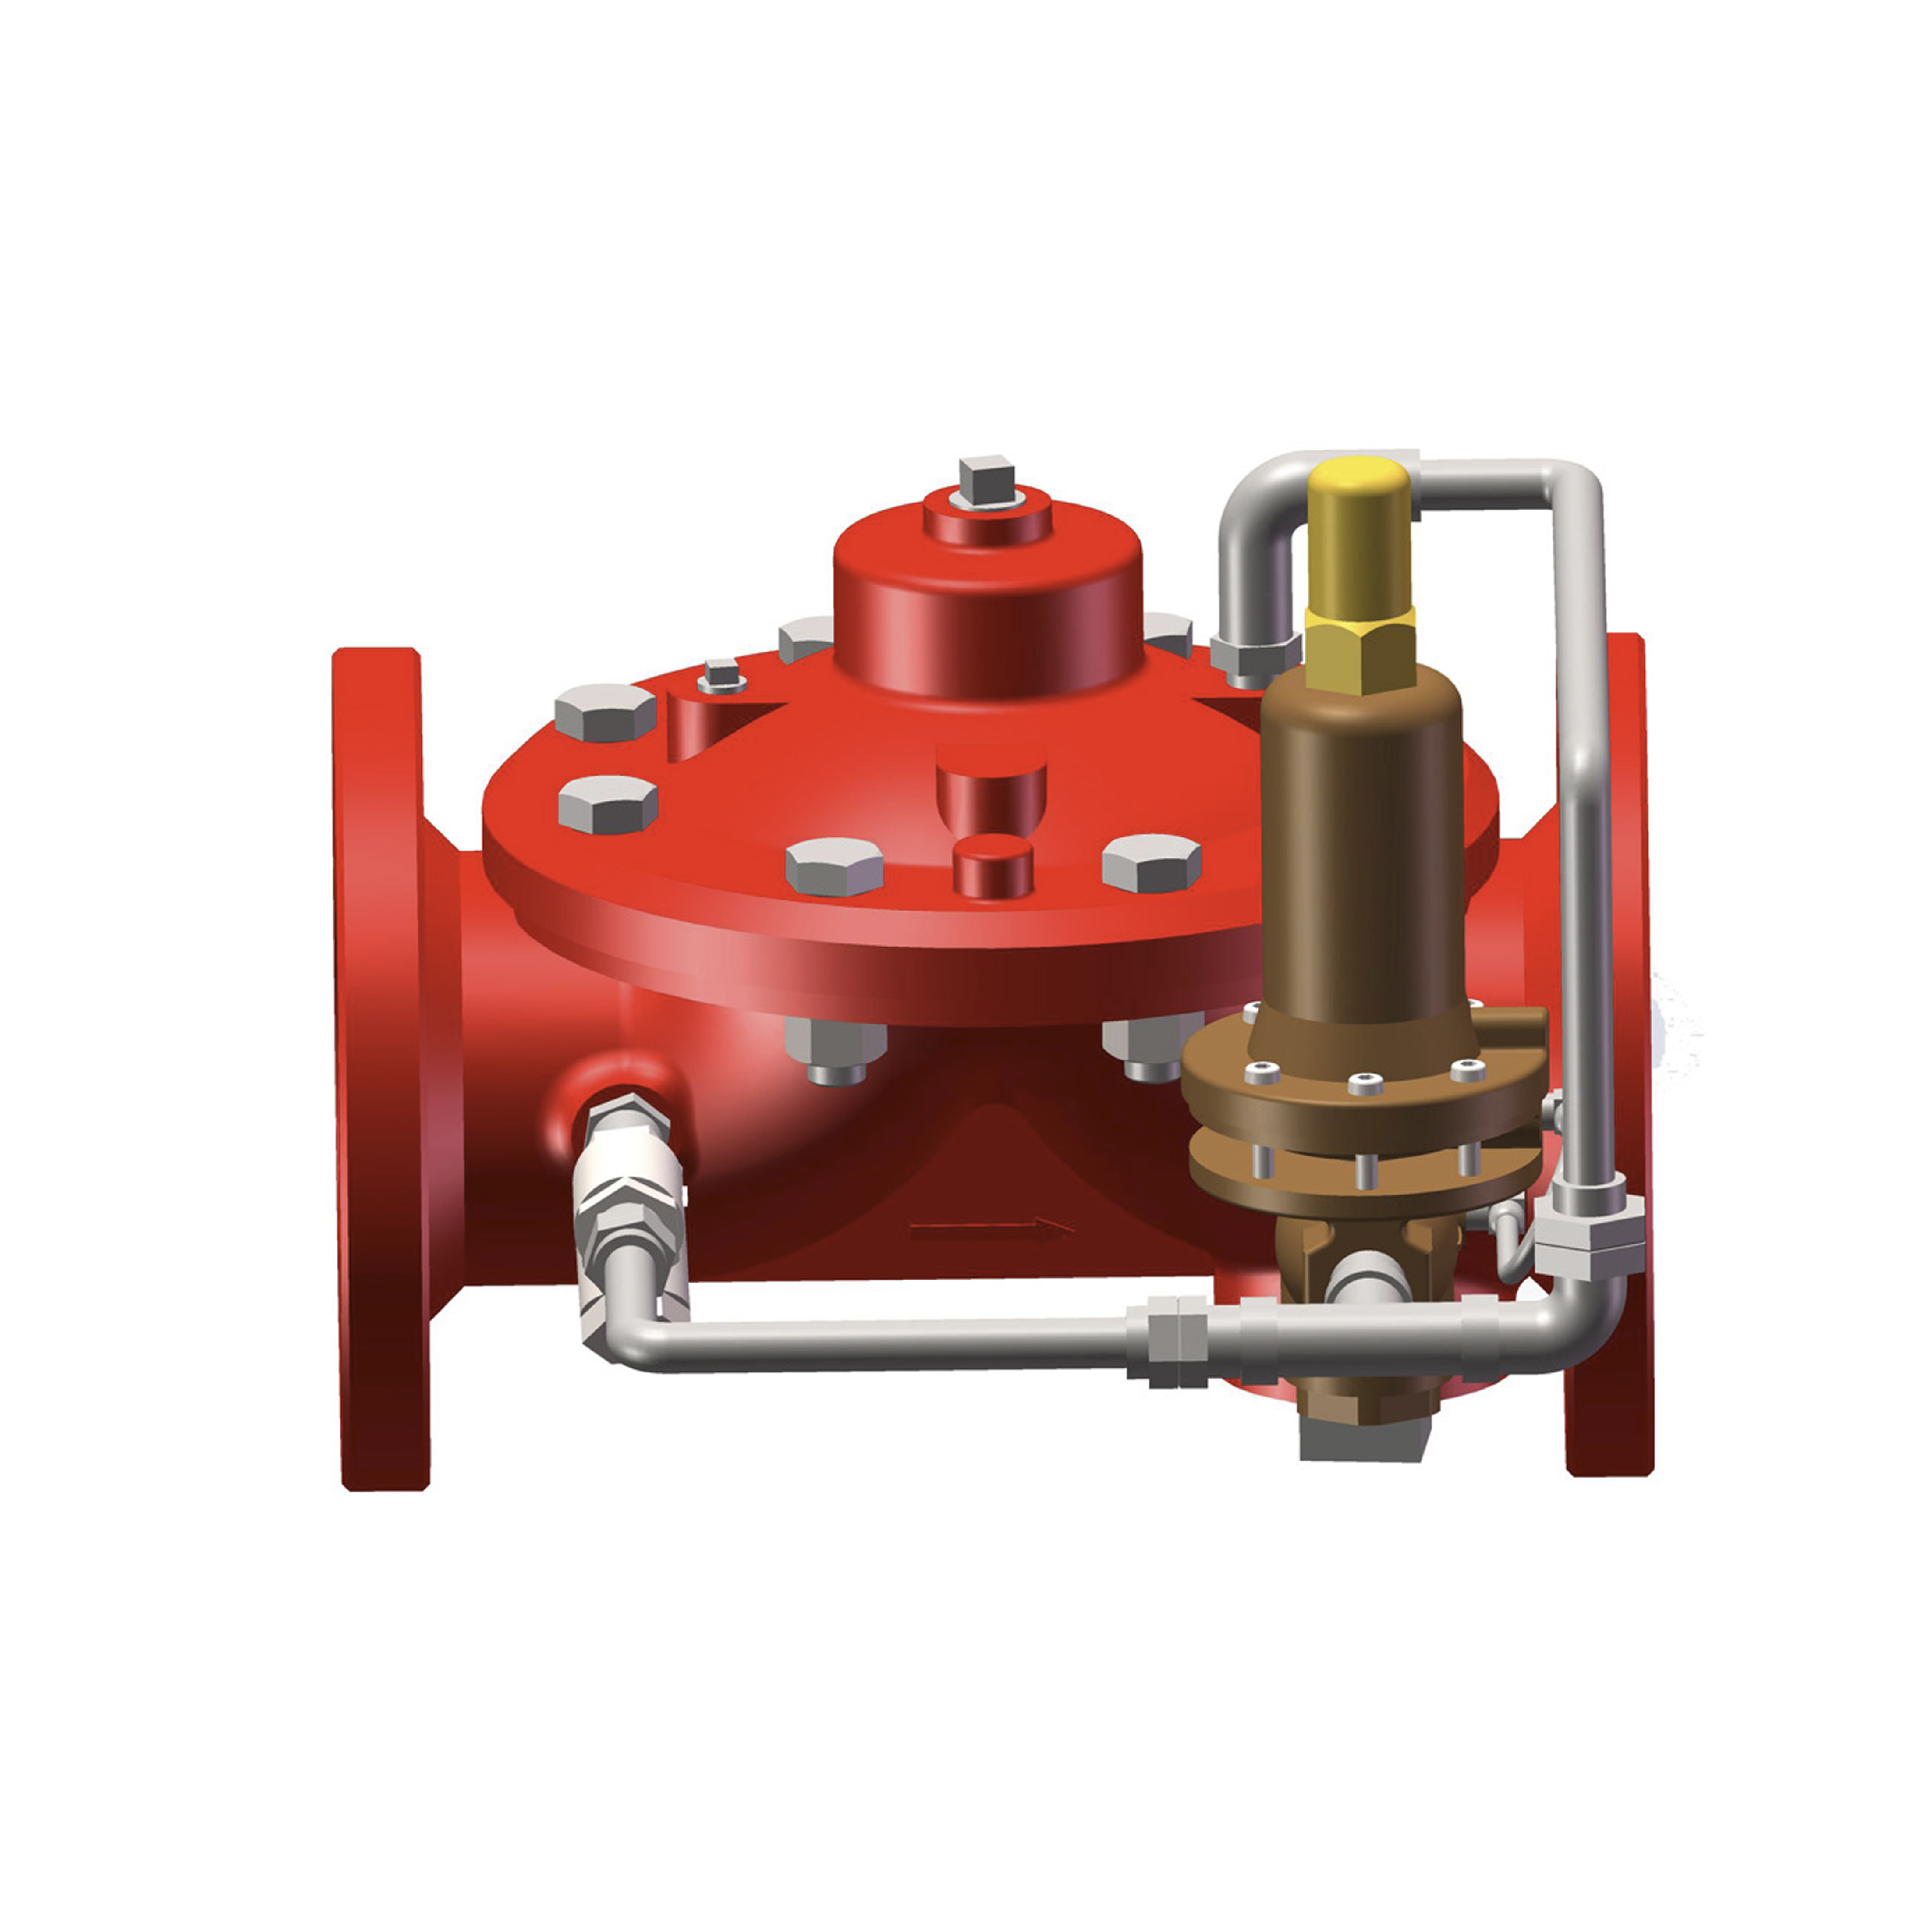 Pressure Reducing Valve Fig.505